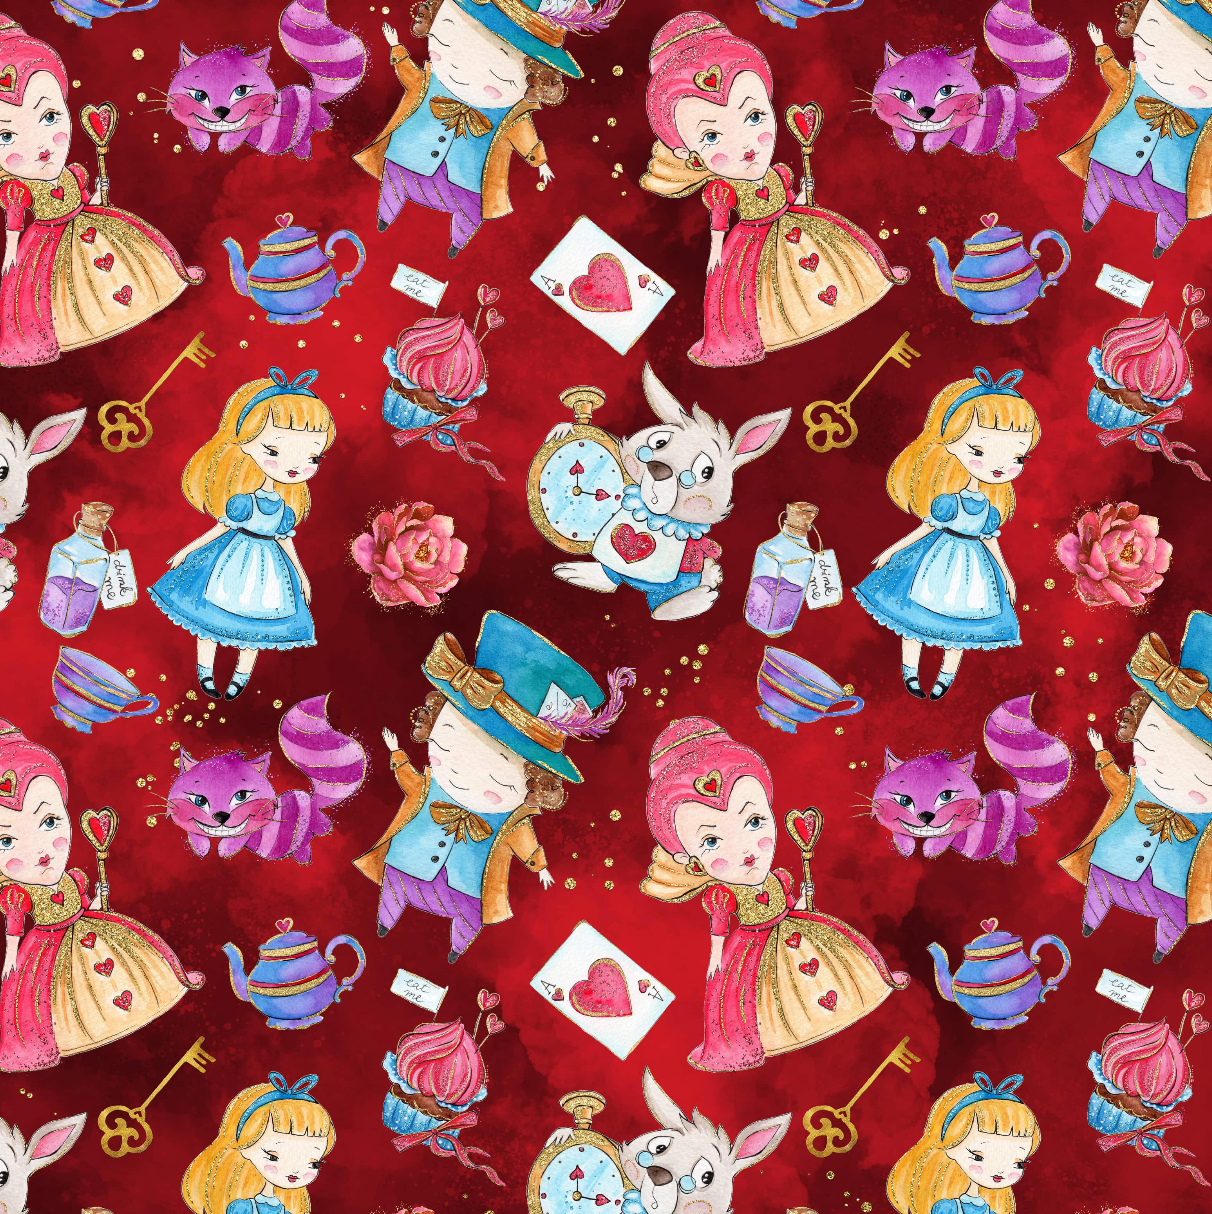 PRE ORDER - Down The Rabbit Hole Red - Digital Fabric Print